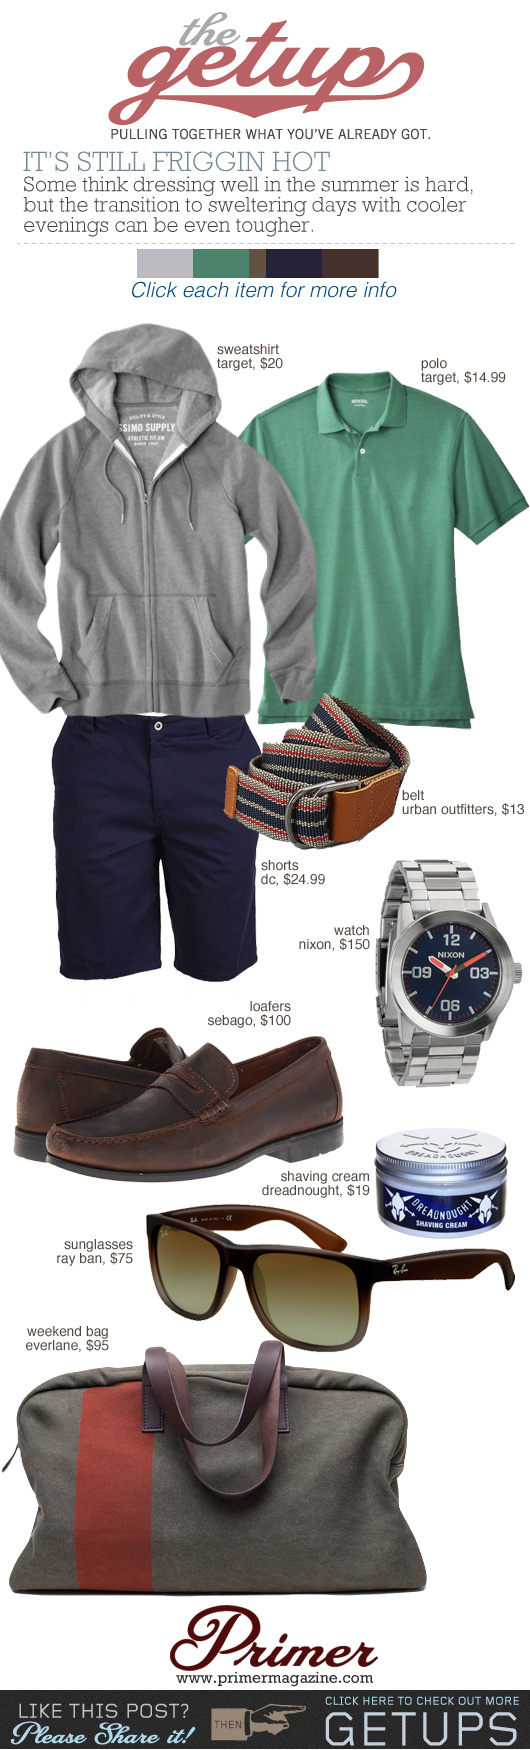 The Getup Still Hot: Men\'s outfit inspiration with gray sweatshirt, green shirt, blue shorts, and blue loafers